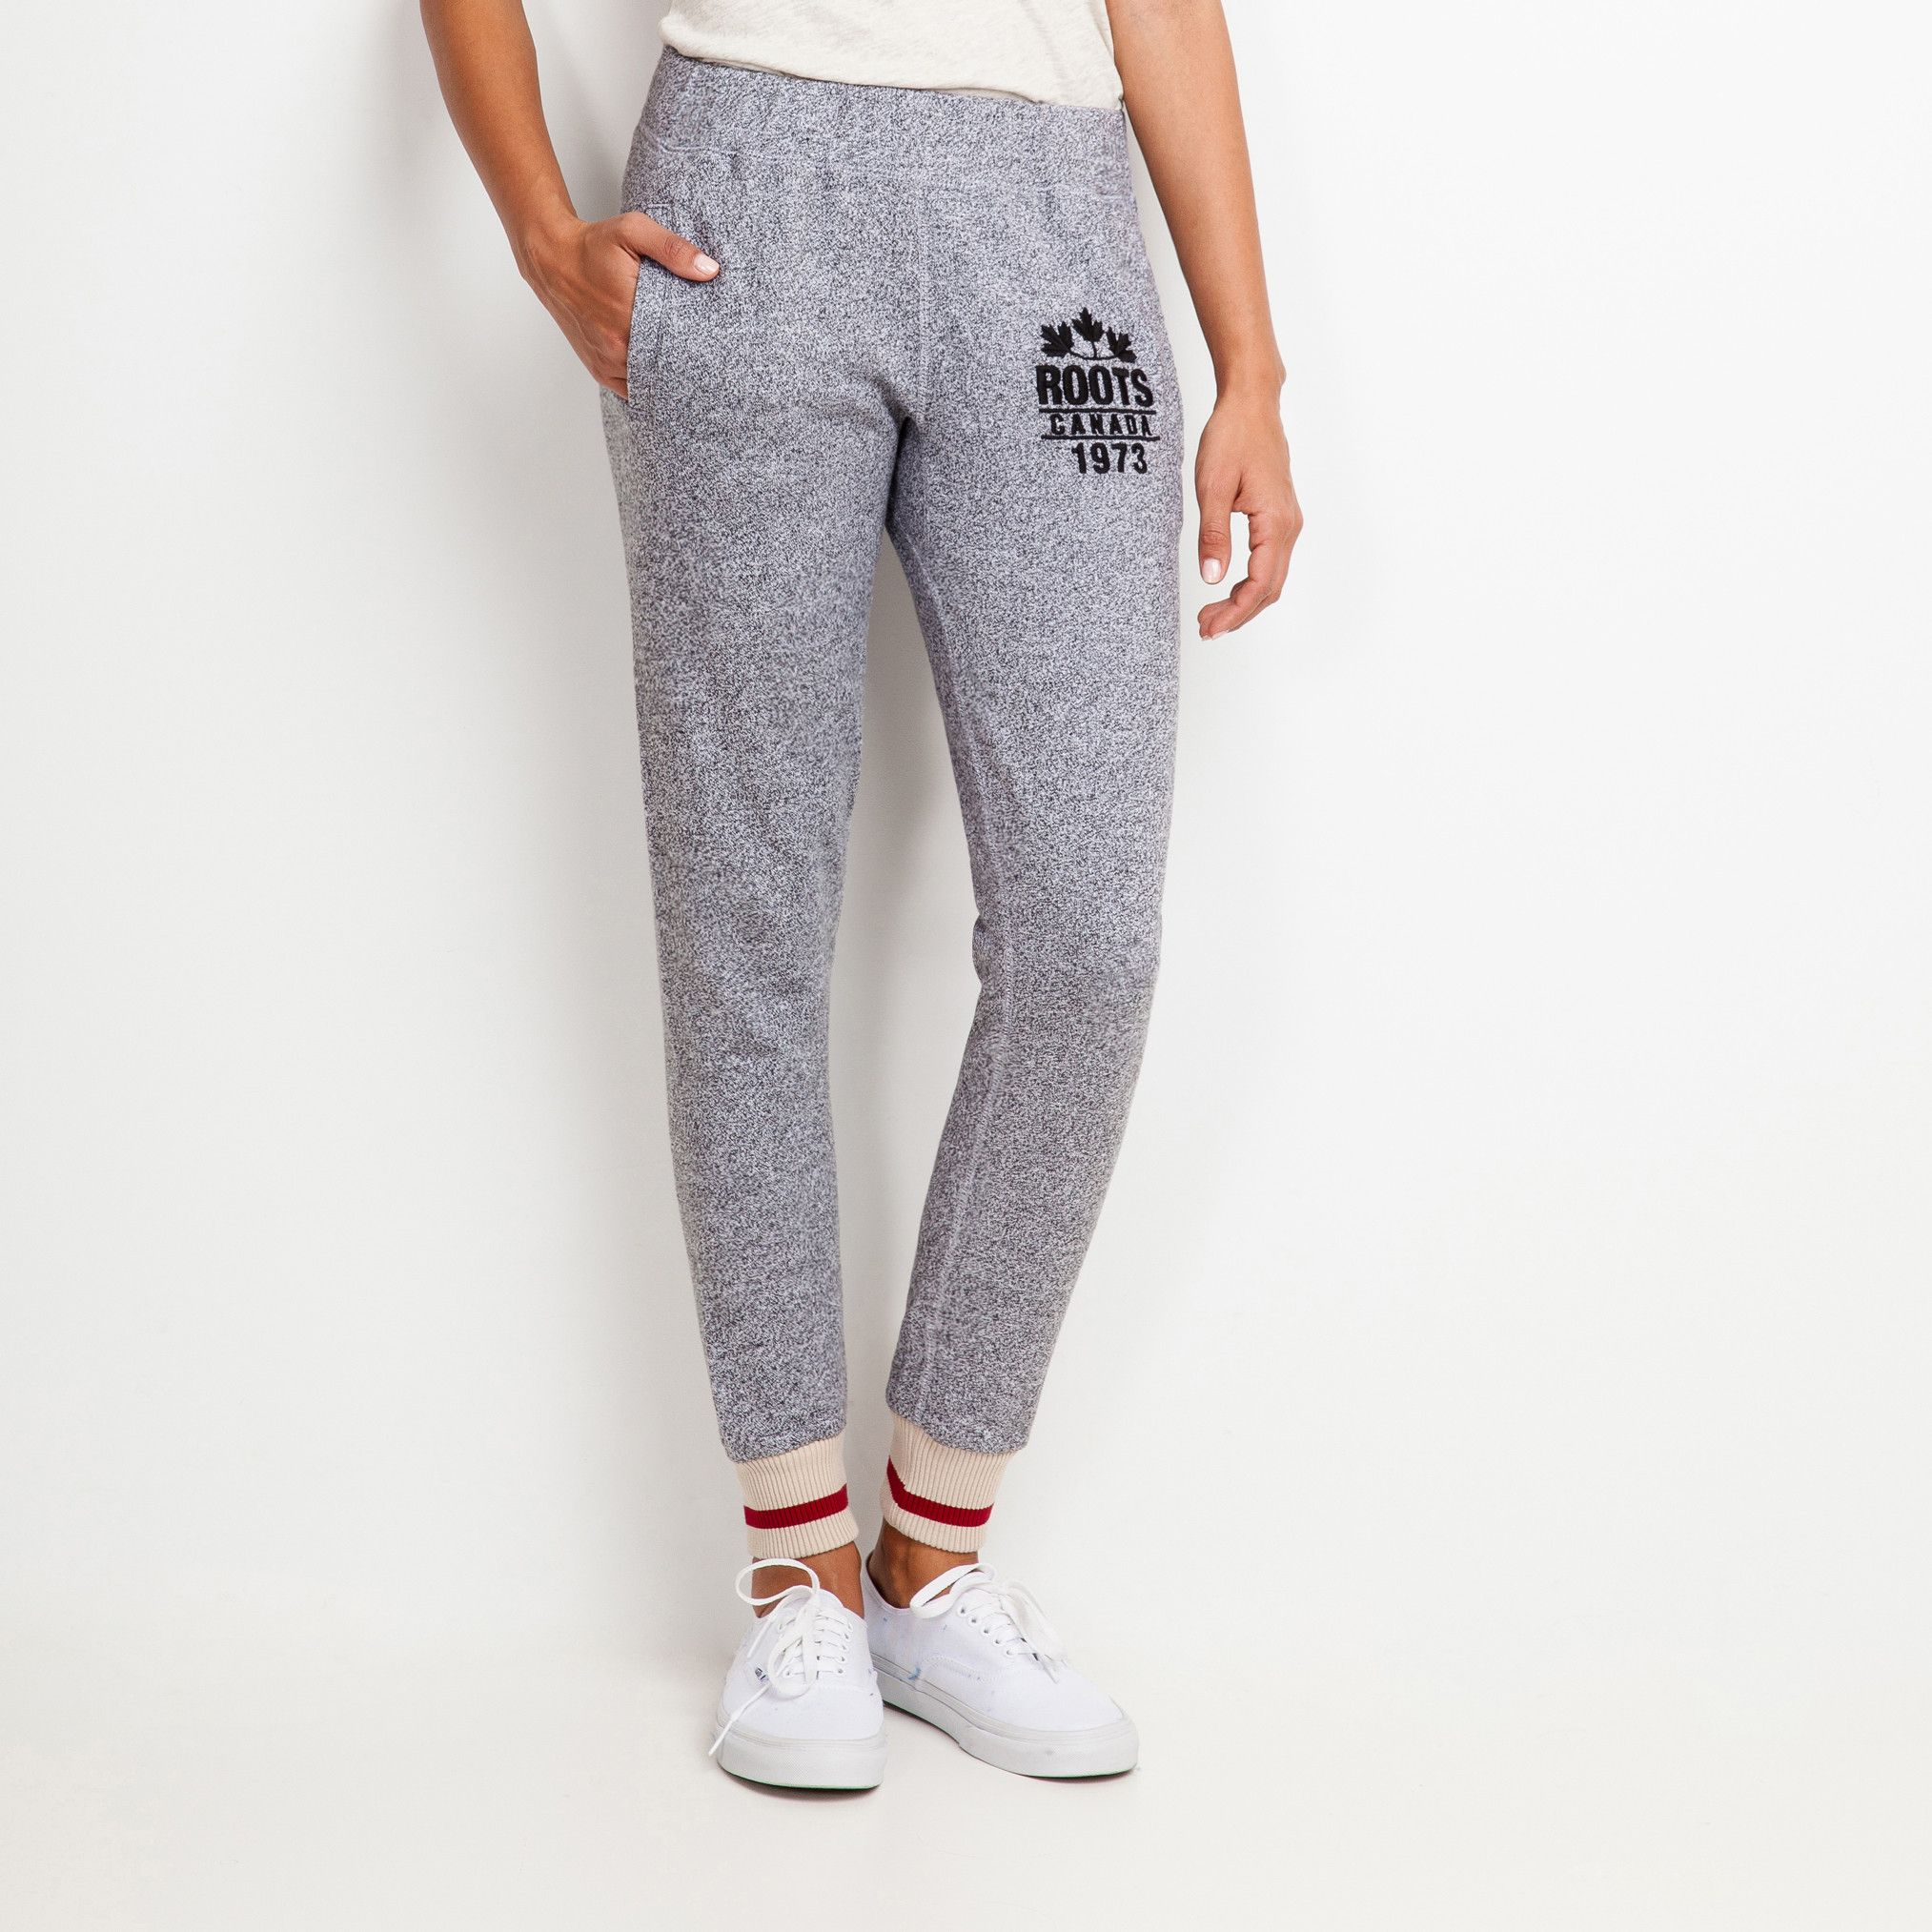 bc34fb1496fbc1 Roots Cabin Slim Sweatpant | Roots Sweatpants for Women | style ...